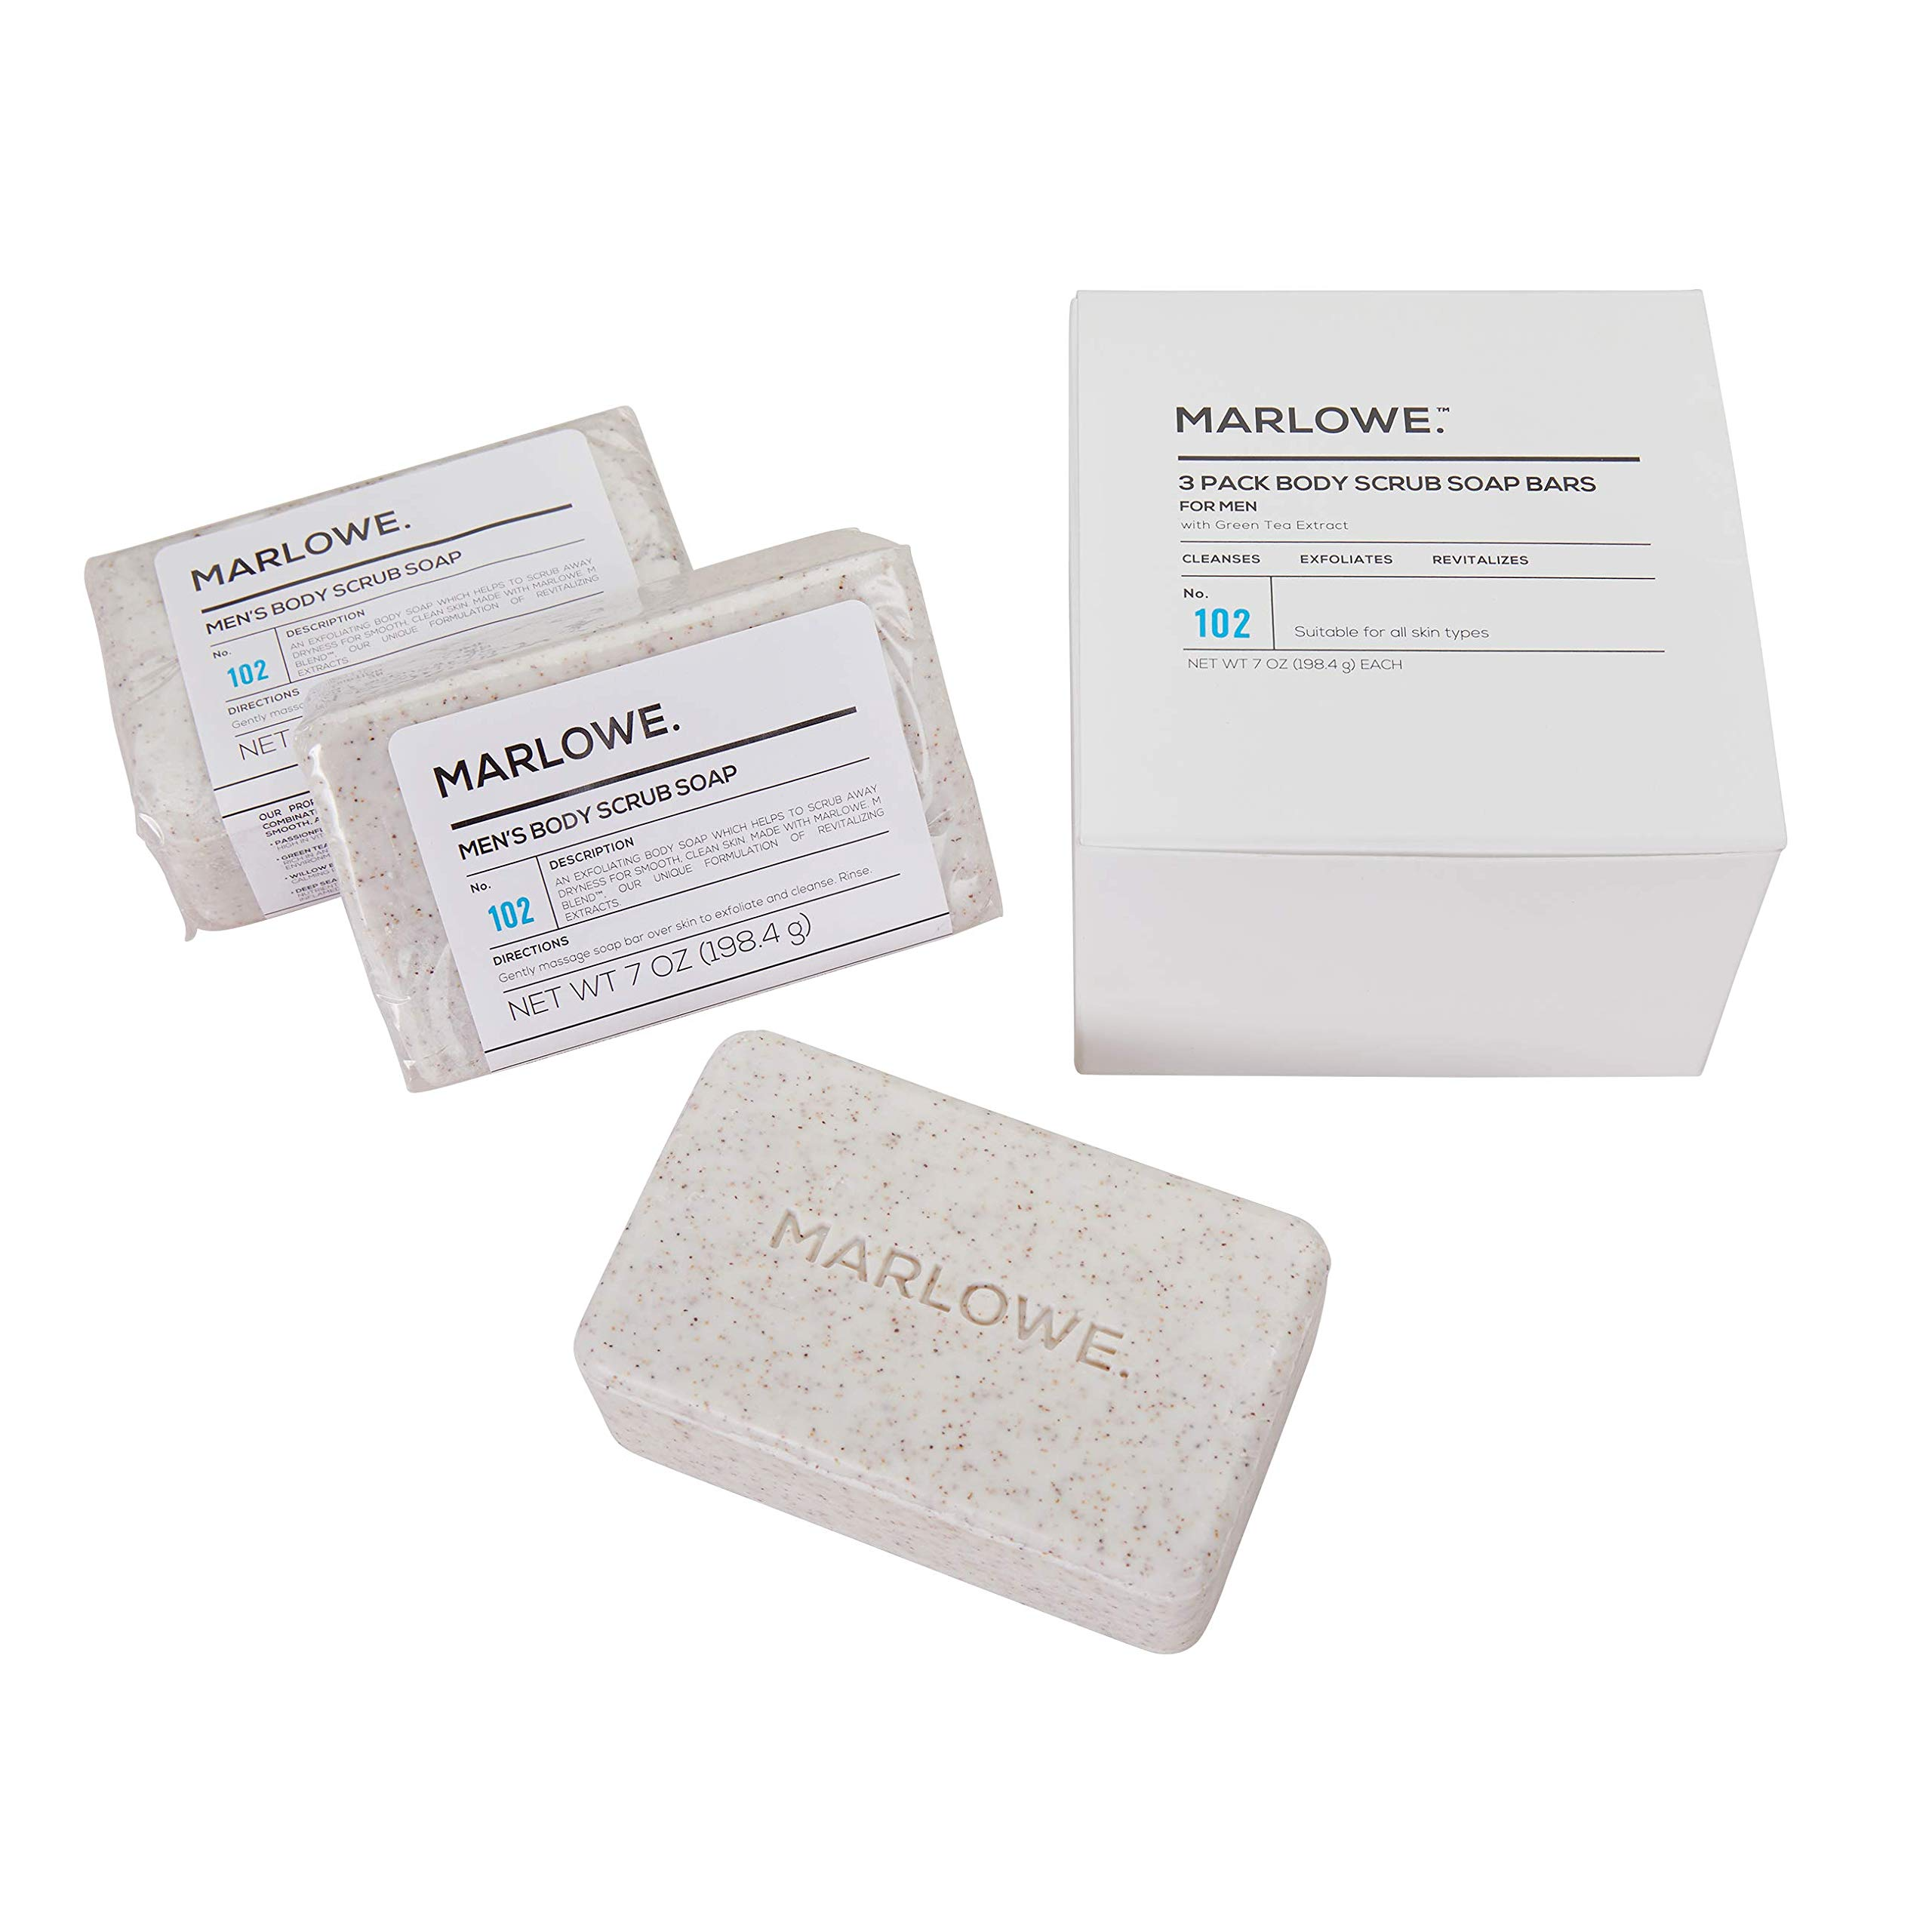 MARLOWE. No. 102 Men's Body Scrub Soap 7 oz (3 Bars) | Best Exfoliating Bar for Men | Made with Natural Ingredients | Green Tea Extract | Amazing Scent by Marlowe